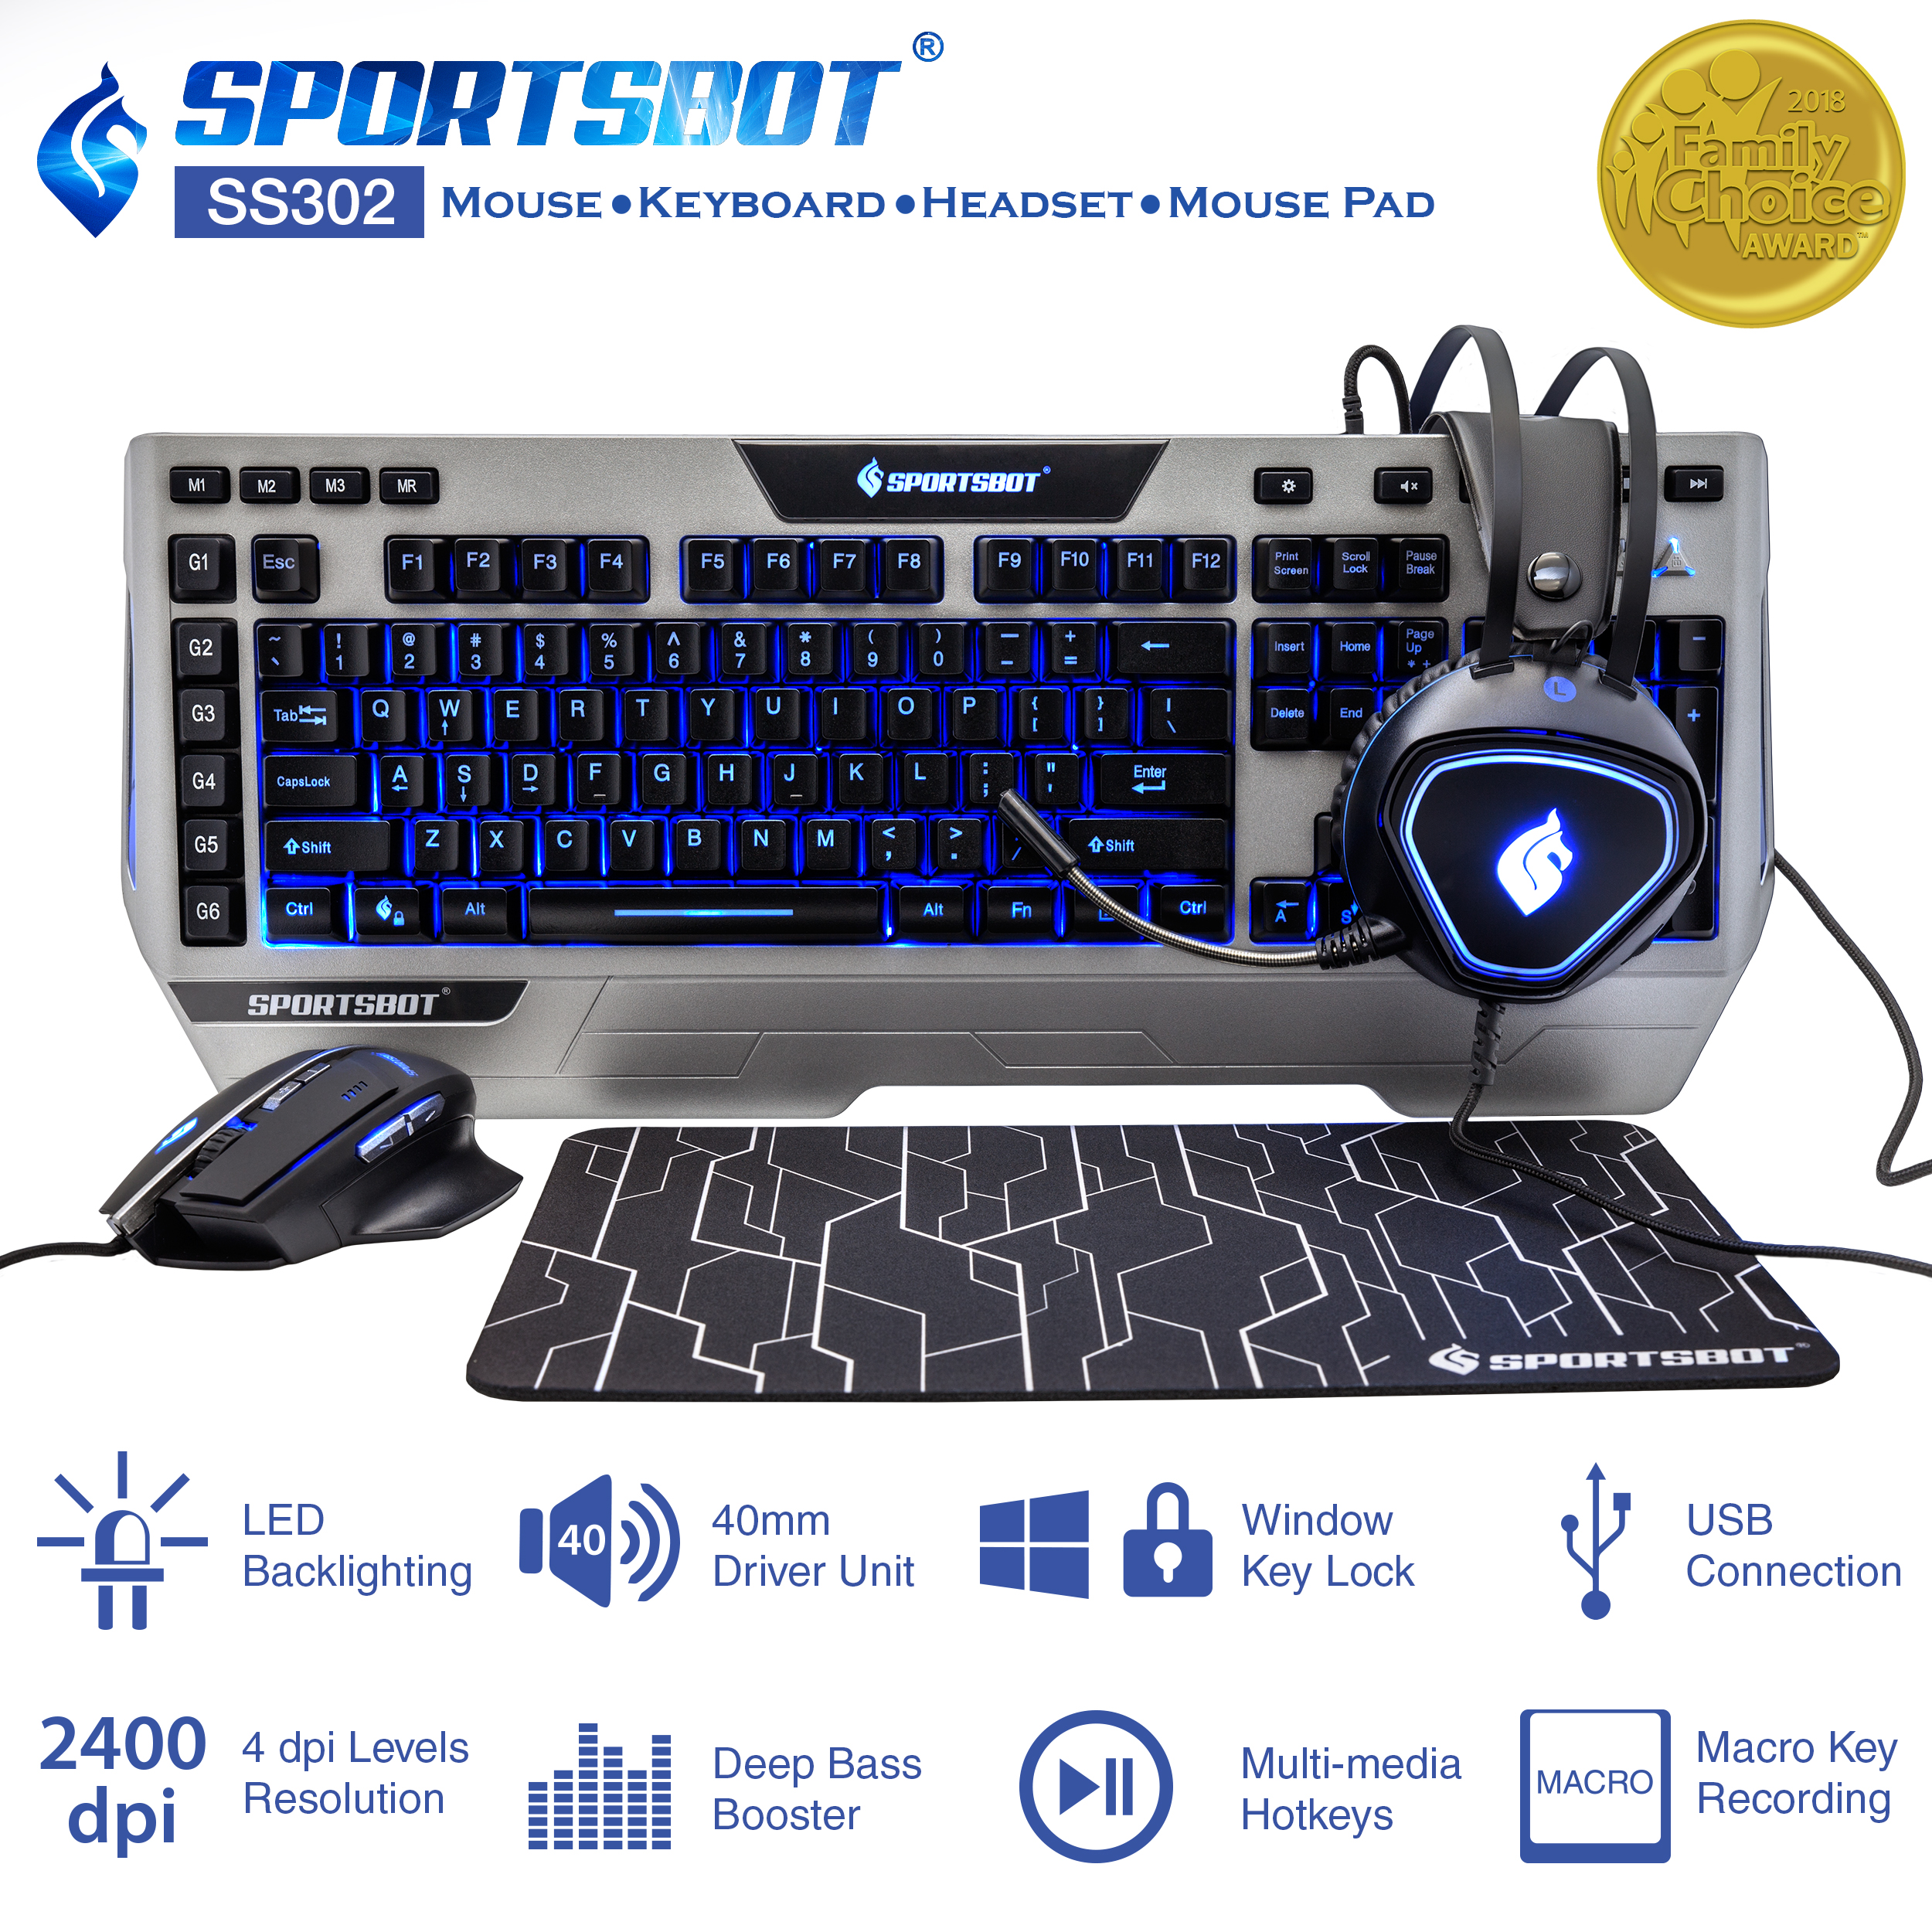 SportsBot SS302 Blue LED Gaming Over-Ear Headset, Keyboard, Mouse & Mouse Pad Combo Set